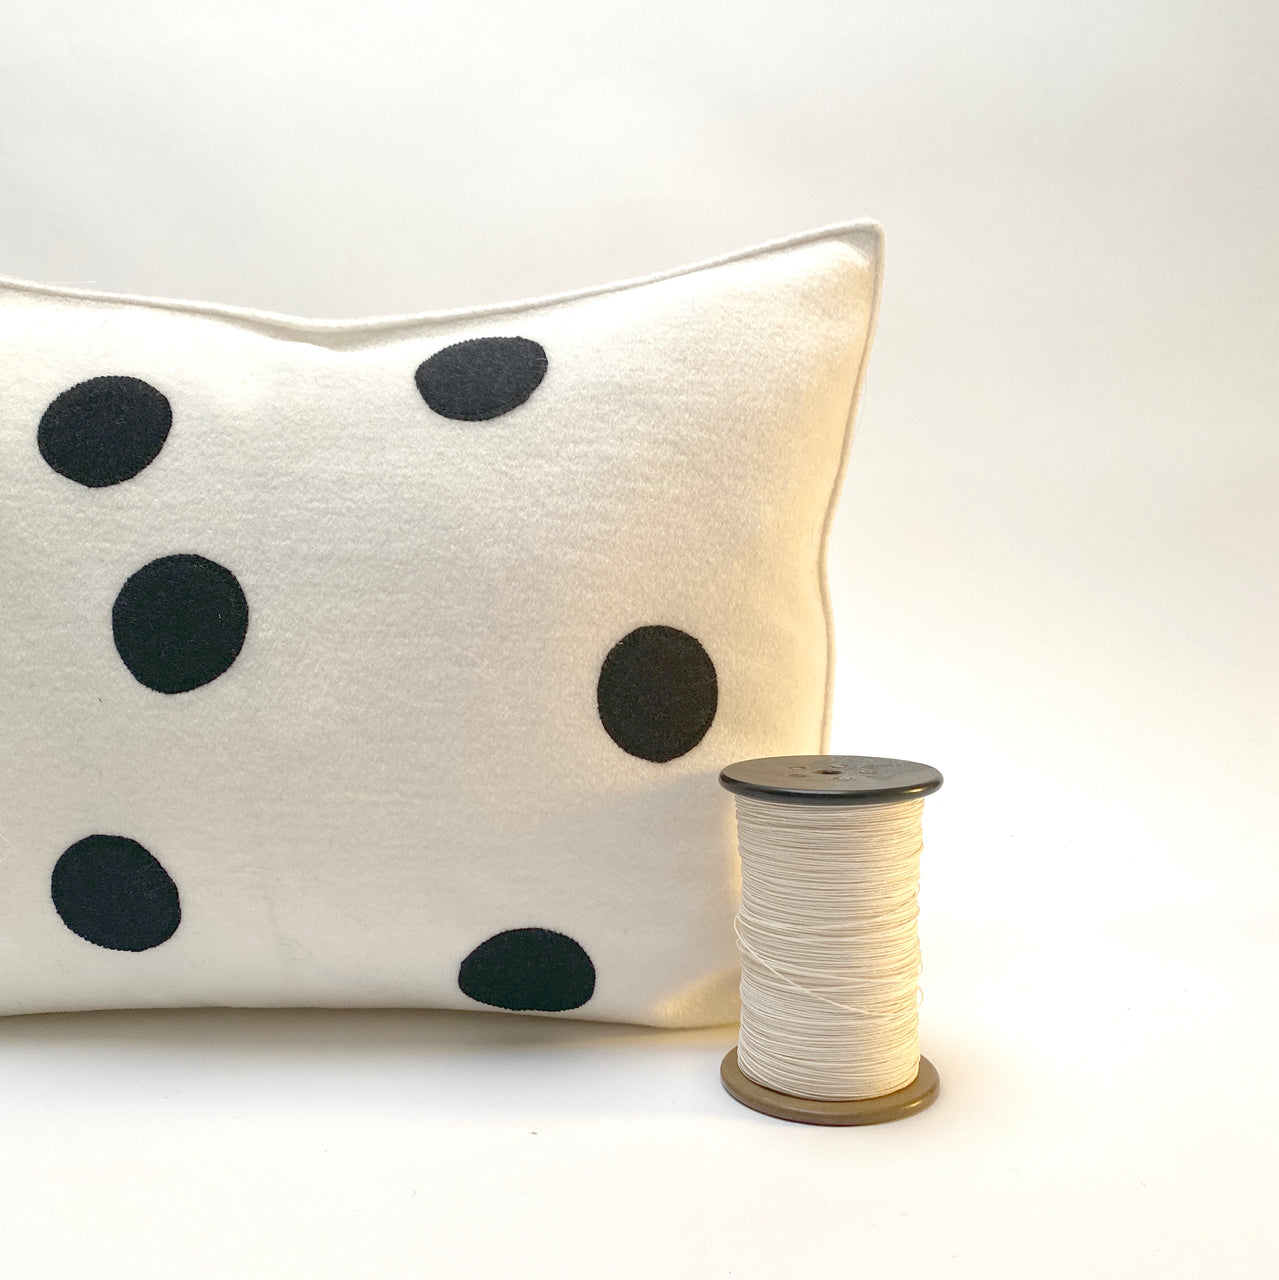 applique wool pillows. white and black dots